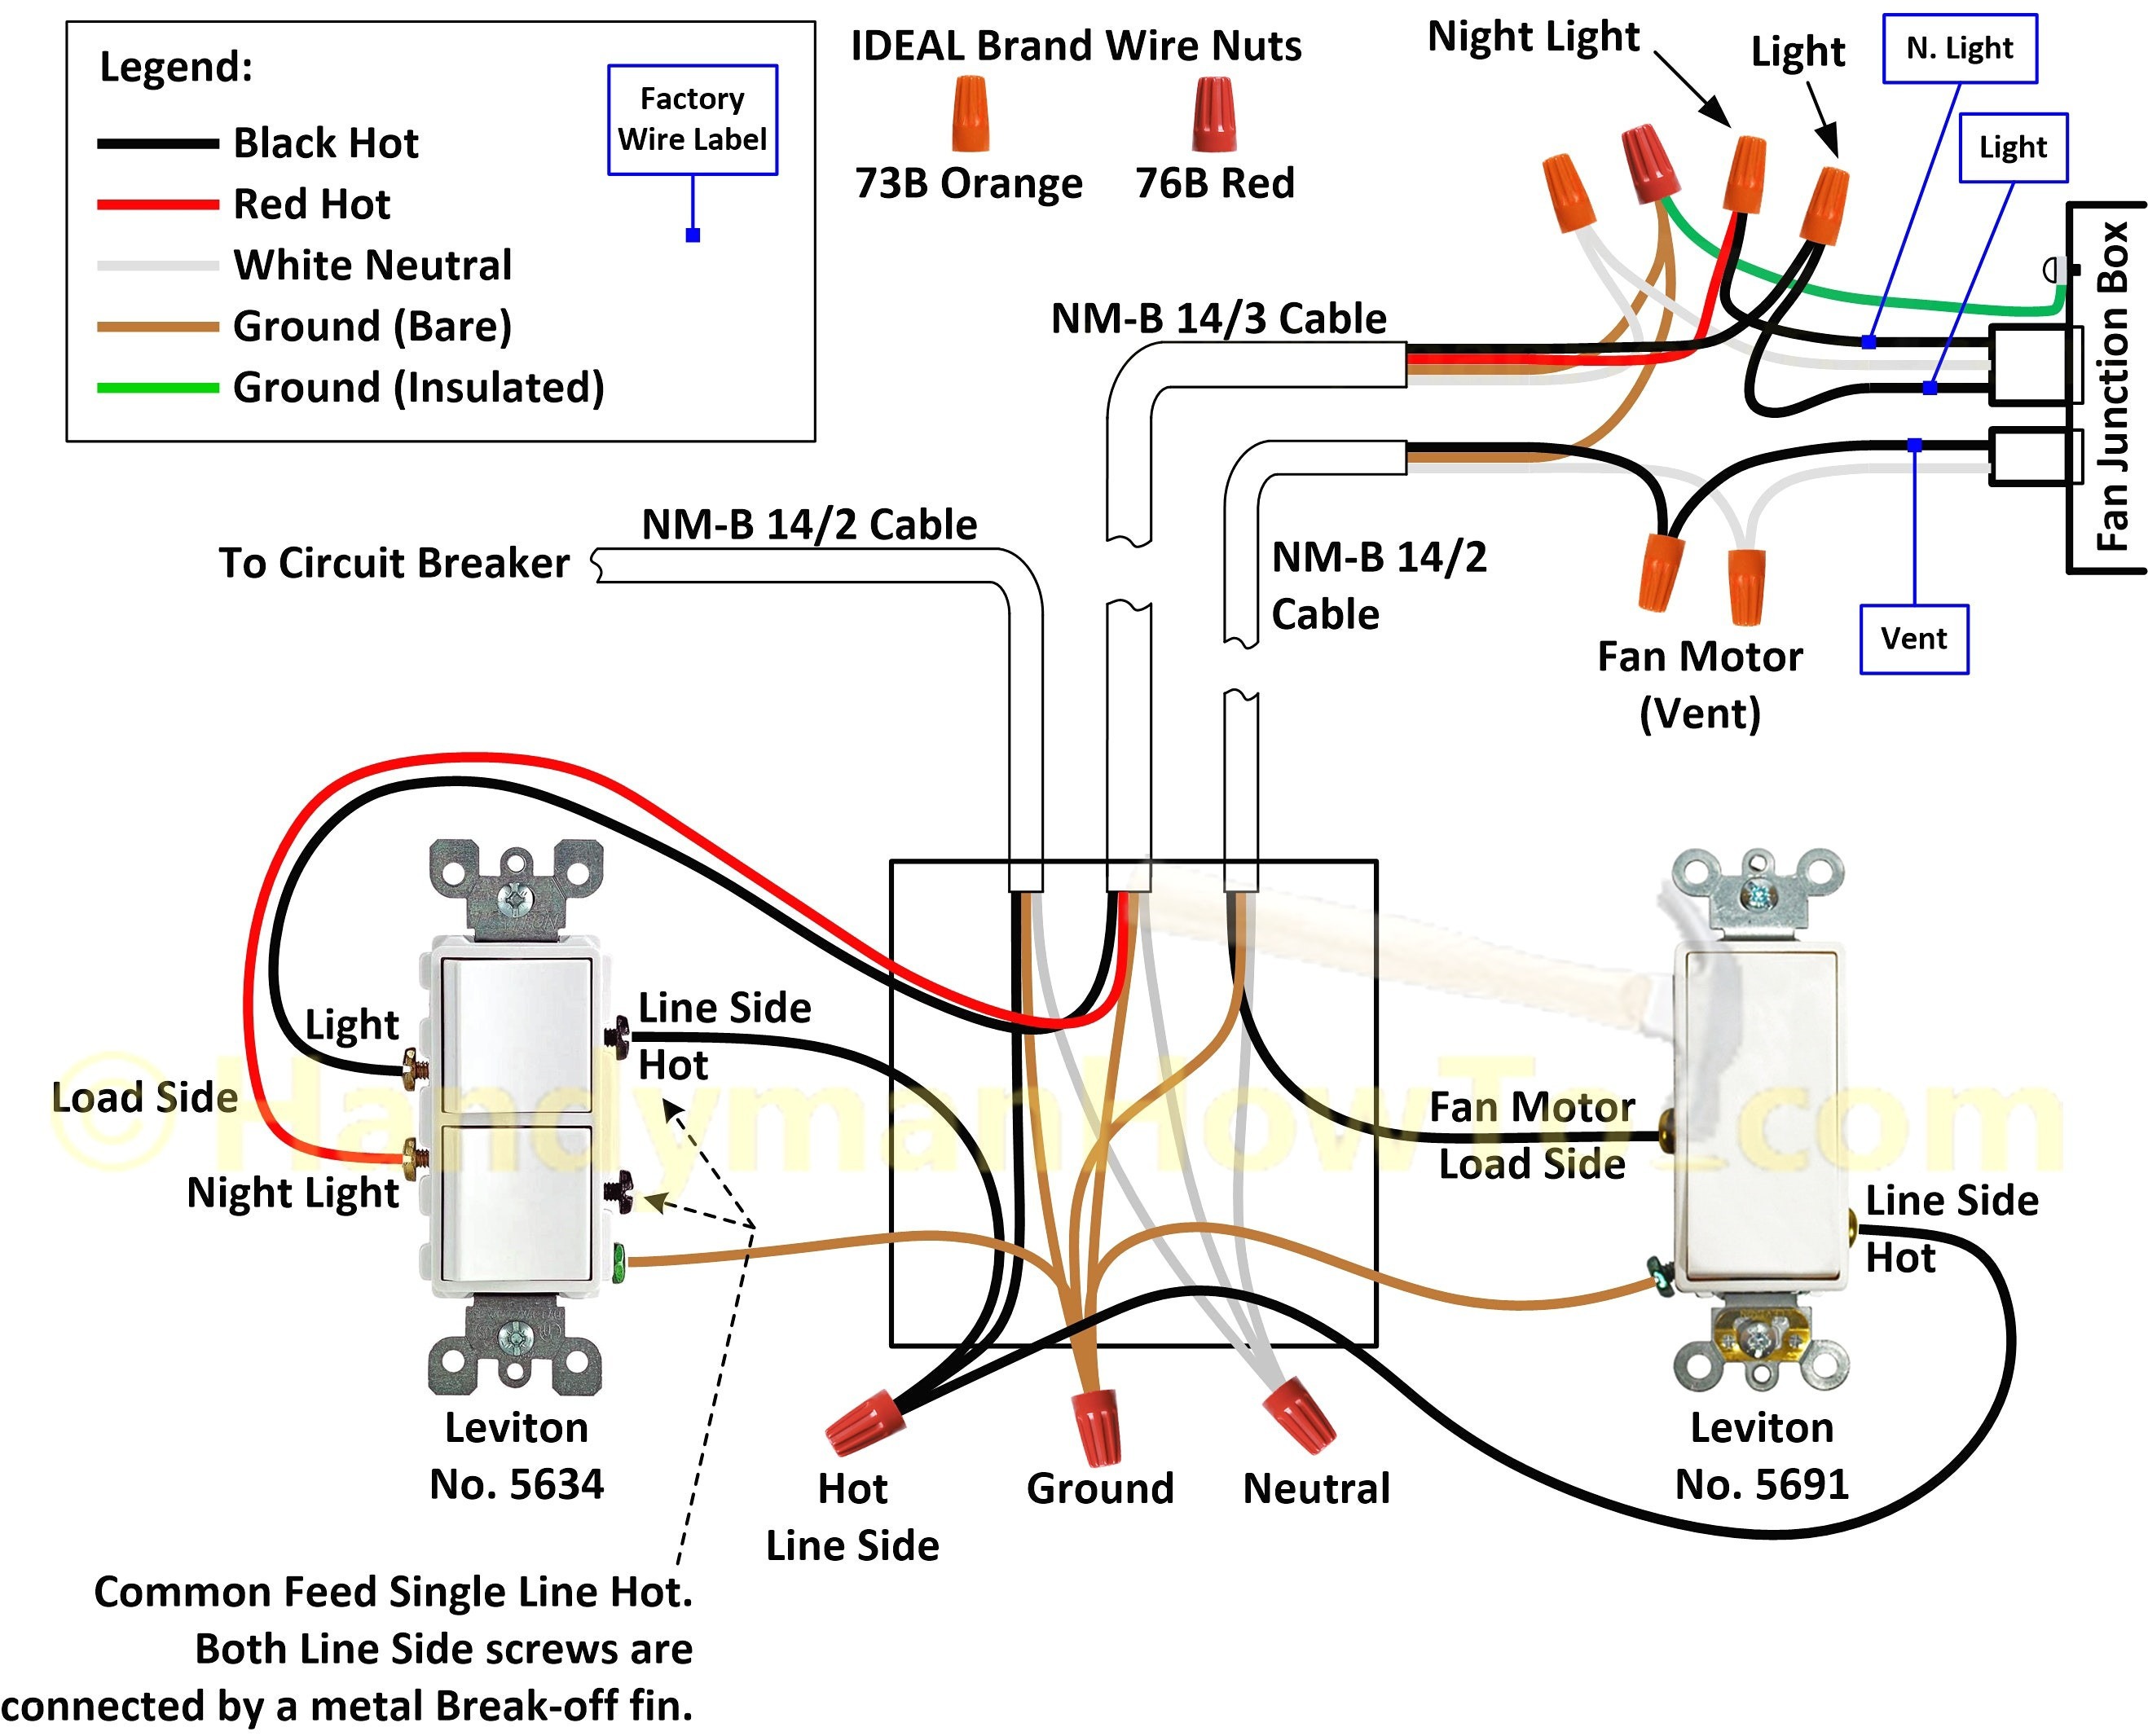 irrigation pump start relay wiring diagram Download-Irrigation Pump Start Relay Wiring Diagram Best Wiring Diagram Te 125 Archives L2archive New Wiring Diagram 3-a